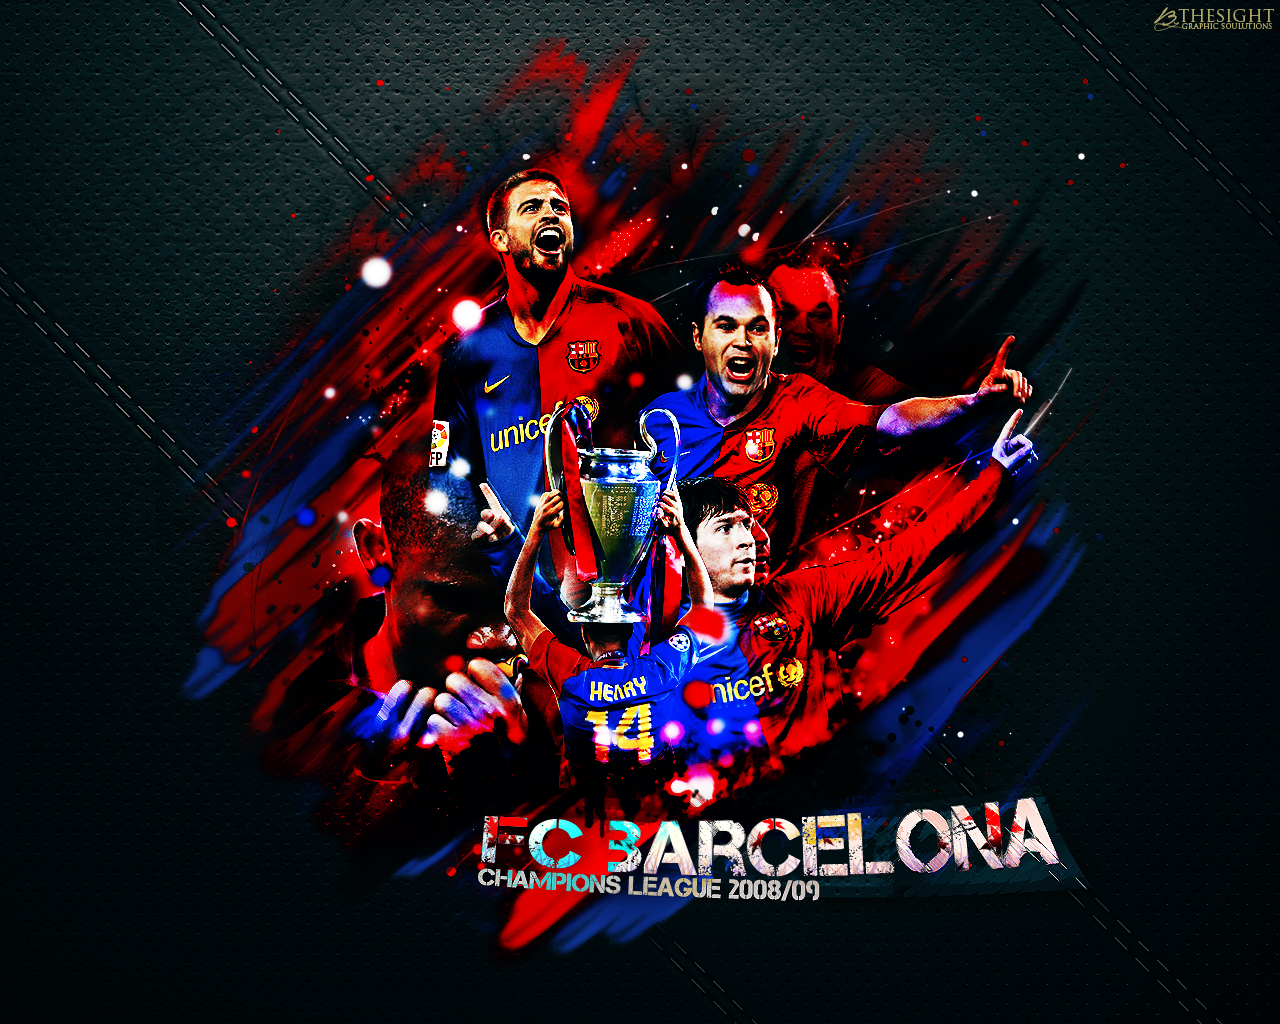 Wallpaper do Barcelona papel de paredewallpapers screensavers 1280x1024